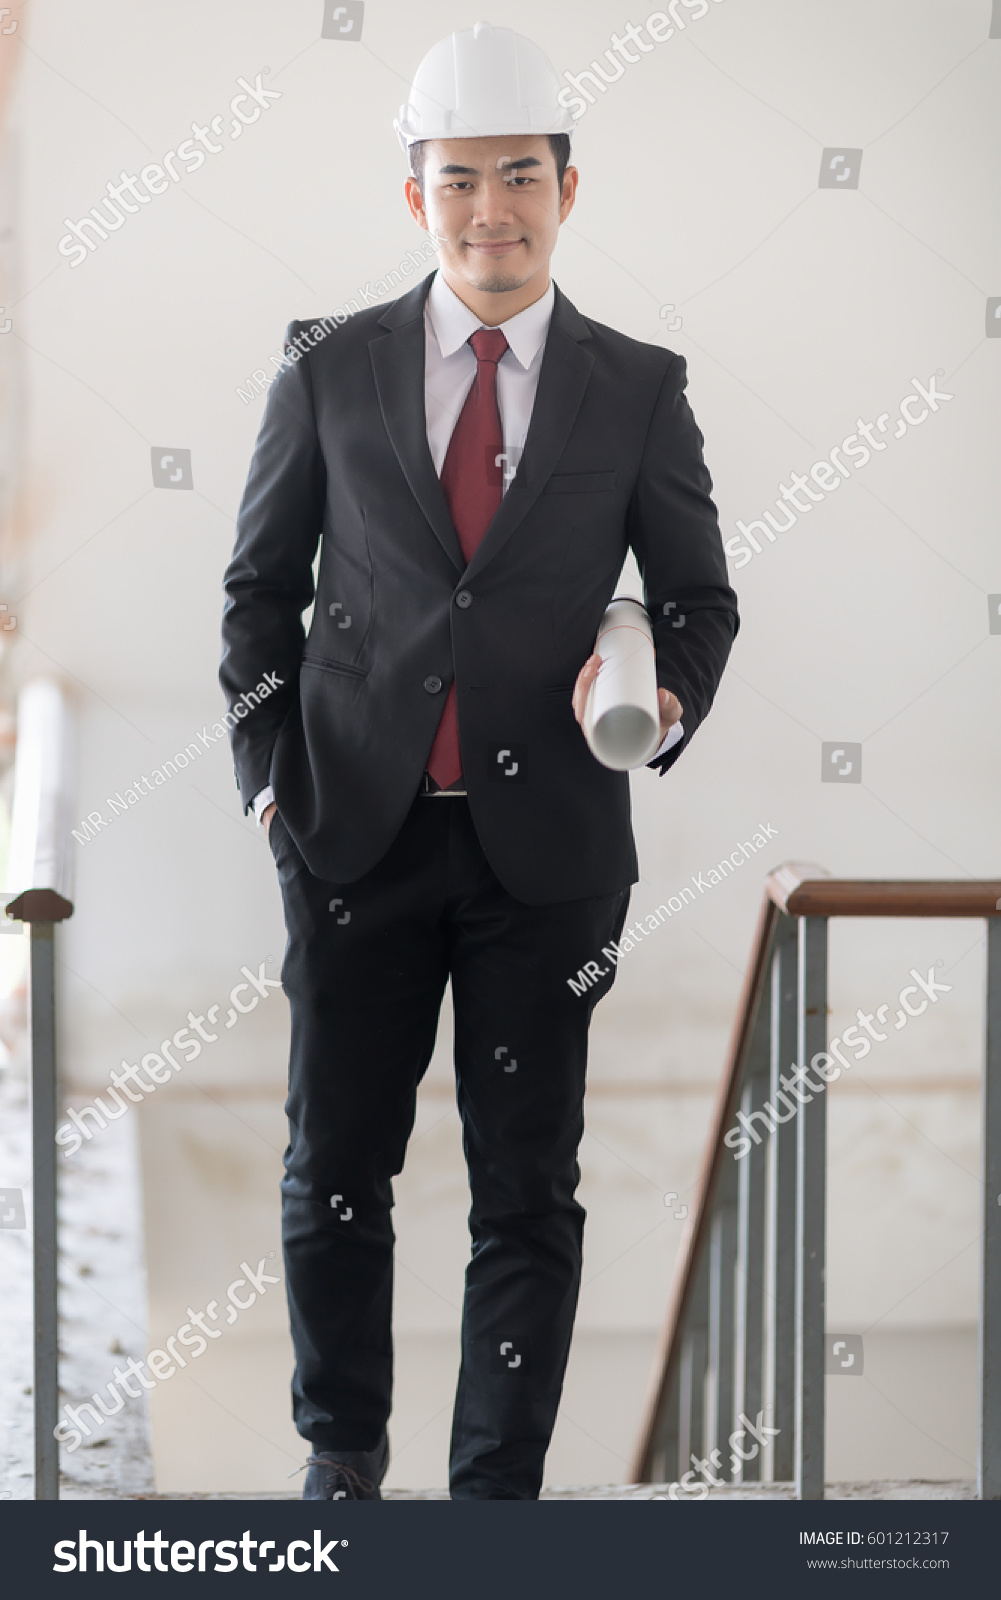 57c935c3db75 Business man in white helmet with black suit and red necktie is walking on  the staircase.